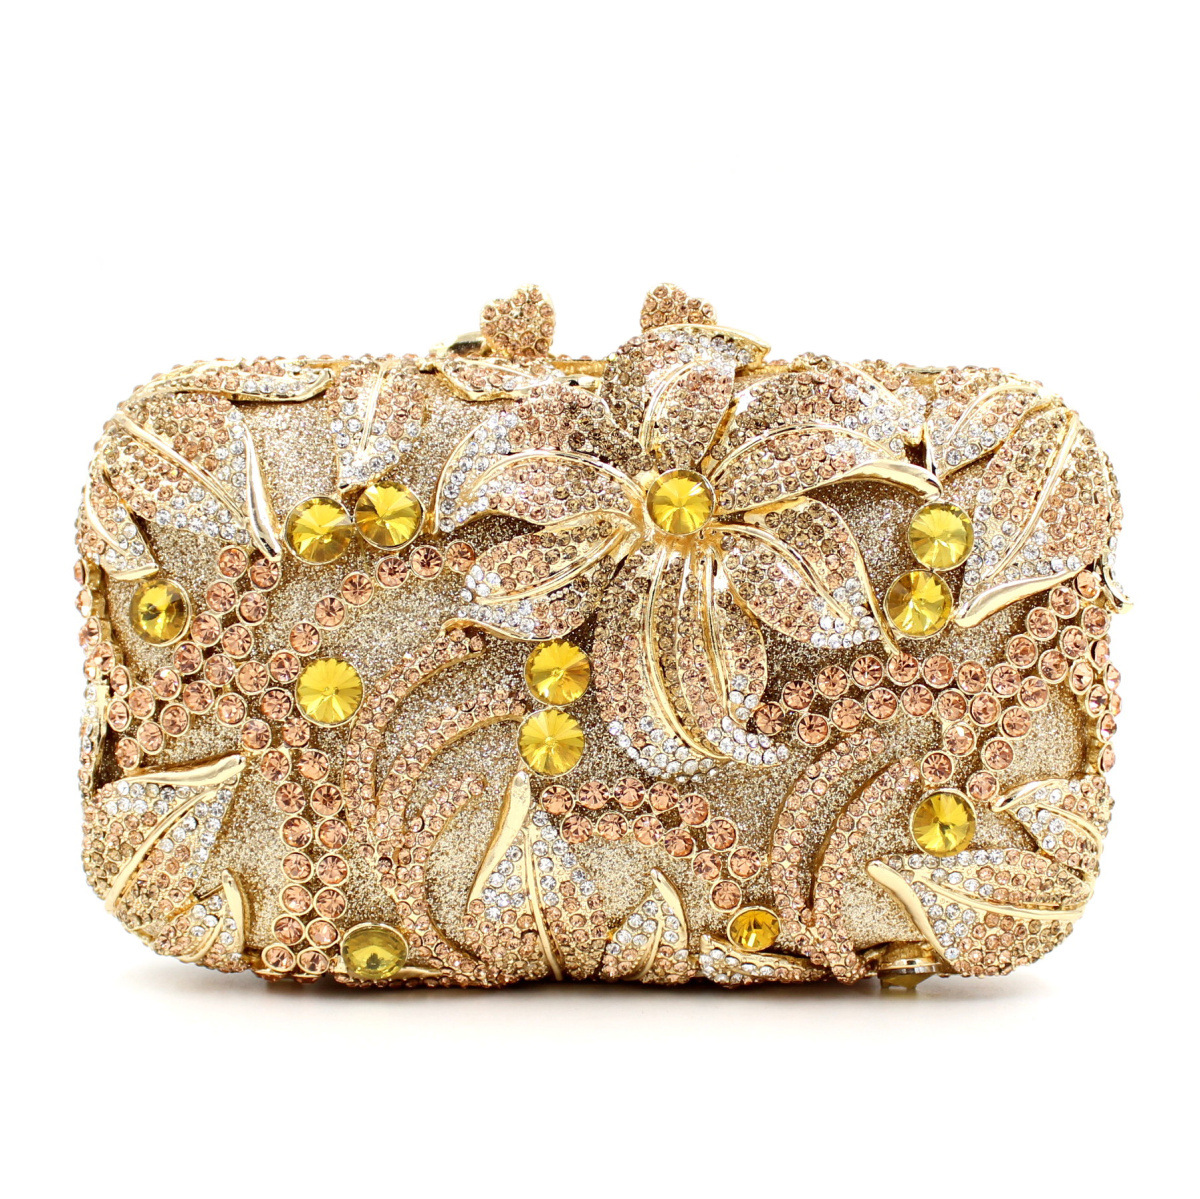 2016 New Both Side Diamond Flower Crystal Beaded Evening Bag Clutch Bags Hot Styling Day Clutches Lady Brides Wedding Purse